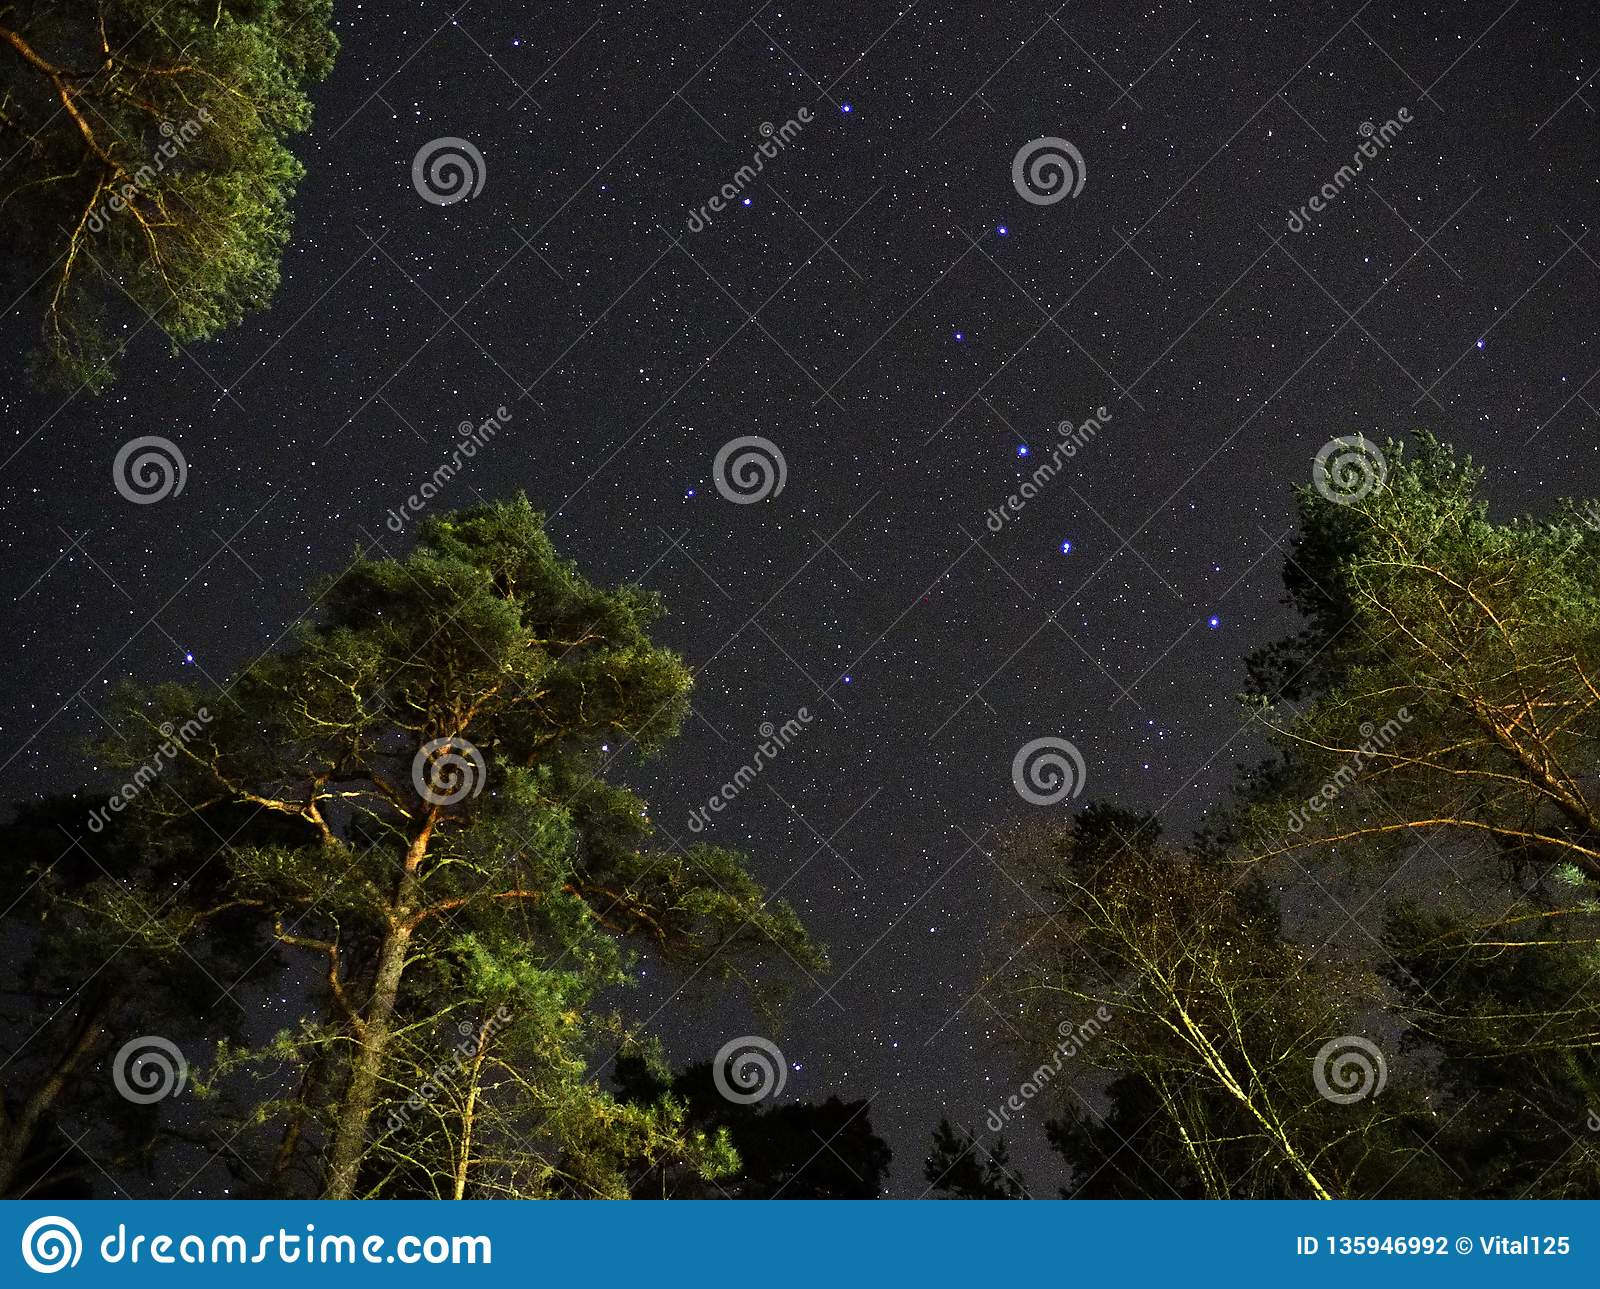 Big dipper stars on night sky over green forest